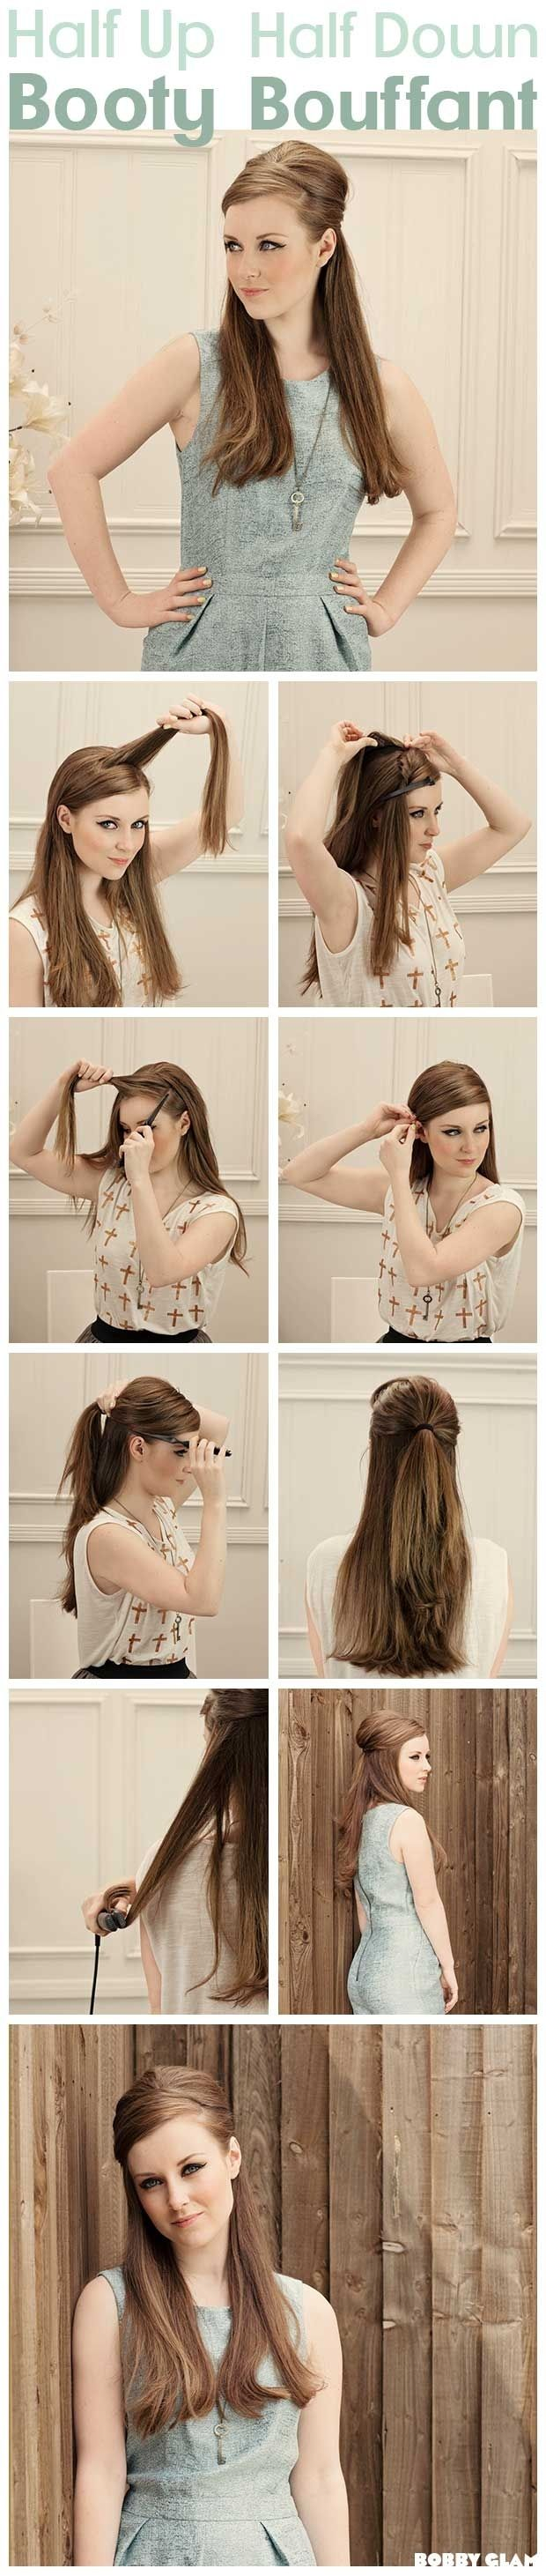 best coiffure images on pinterest hairstyle ideas hair ideas